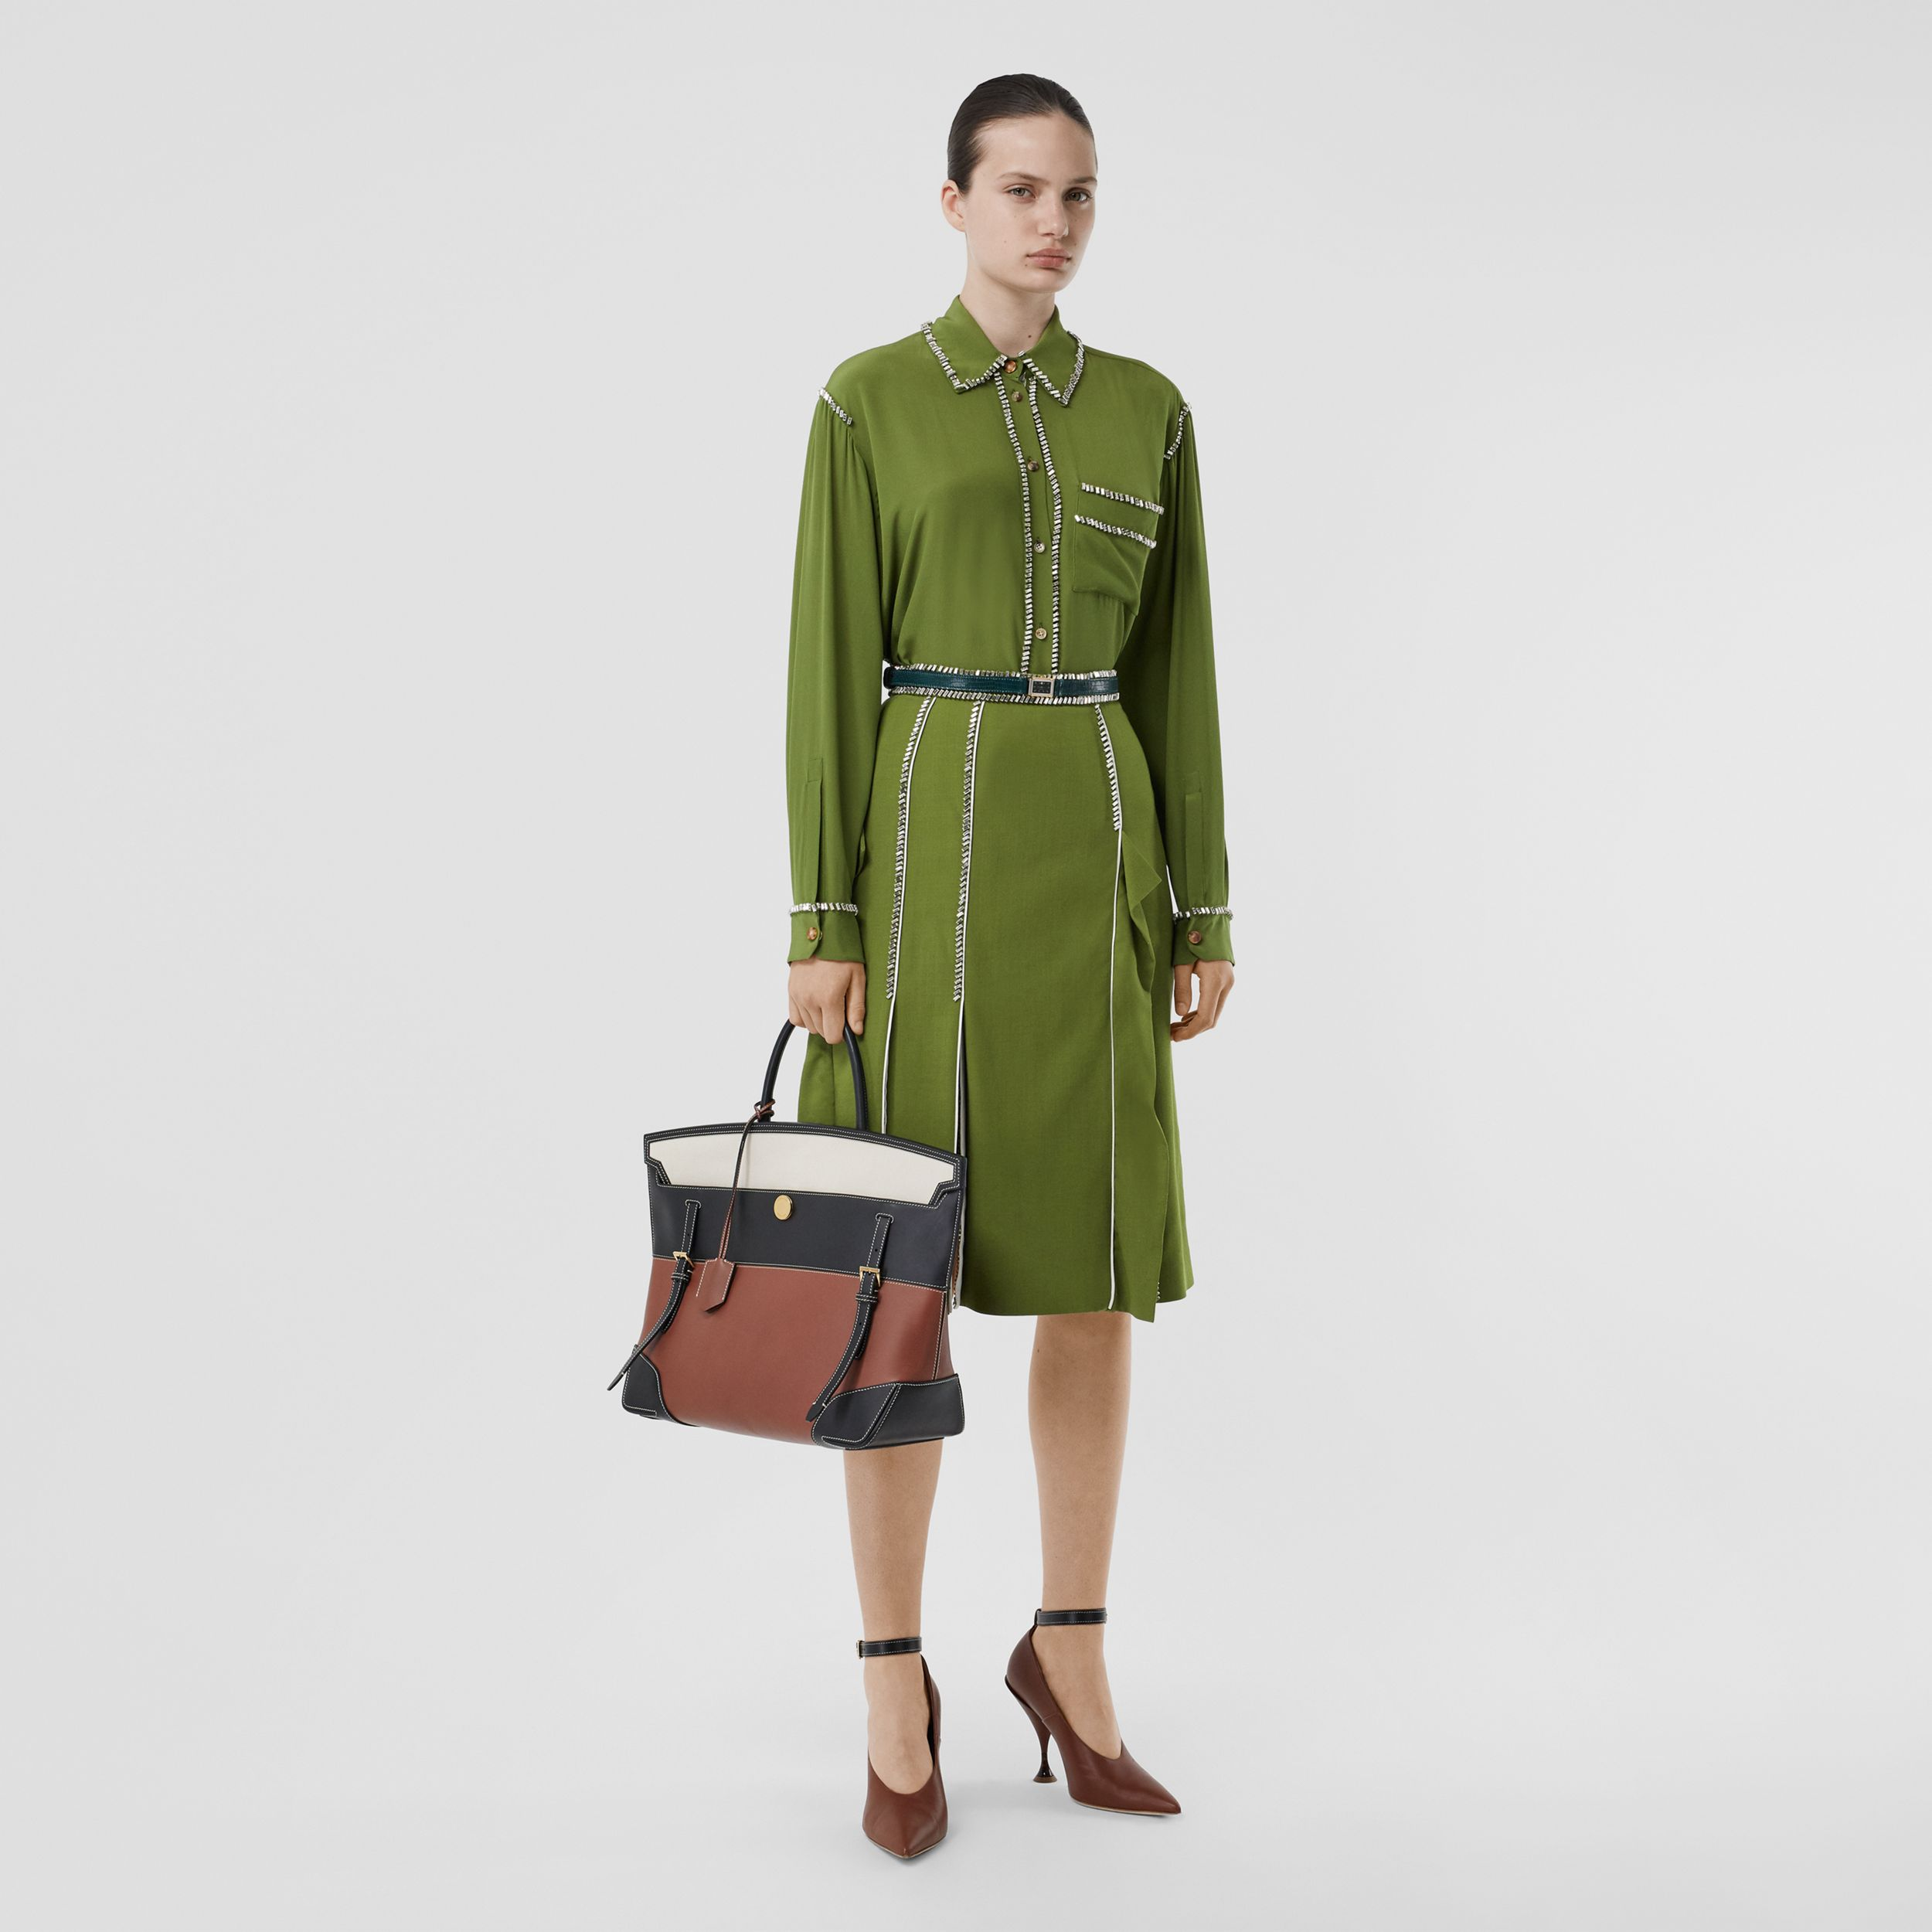 Crystal Detail Panelled Wool Crepe A-line Skirt in Cedar Green - Women | Burberry - 1